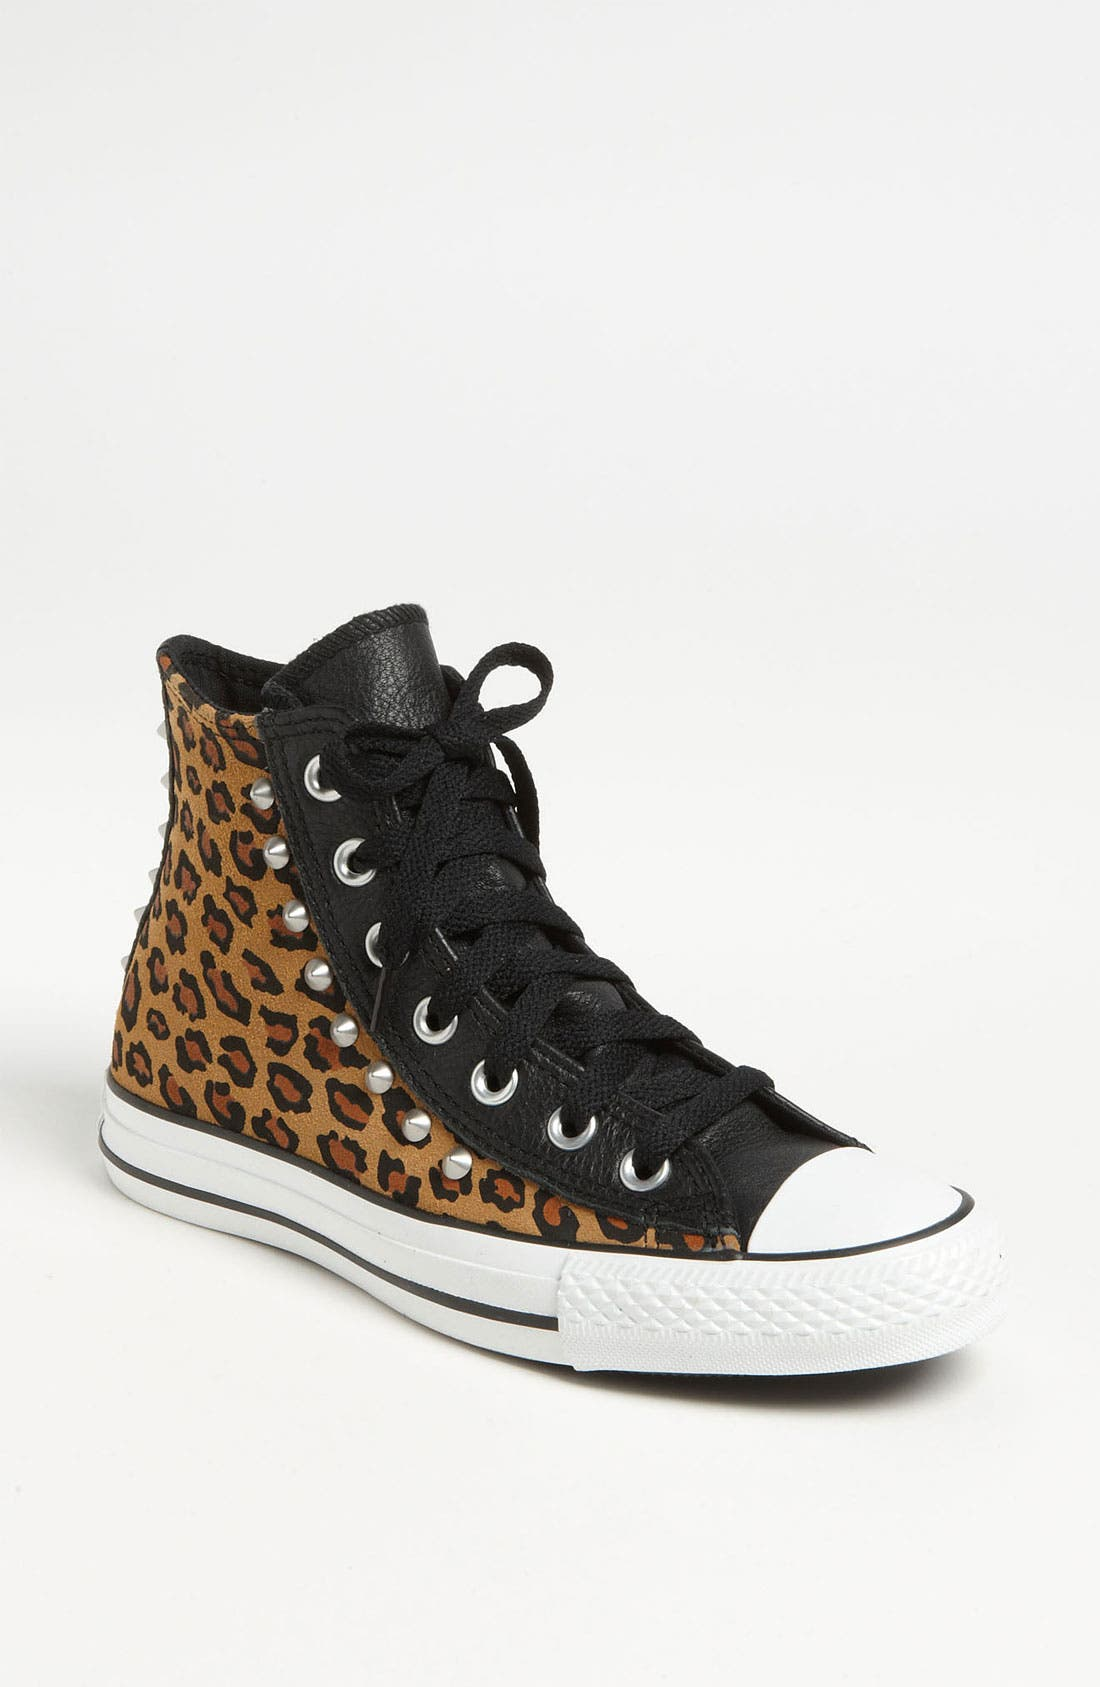 Alternate Image 1 Selected - Converse Chuck Taylor® All Star® Leopard Stud High Top Sneaker